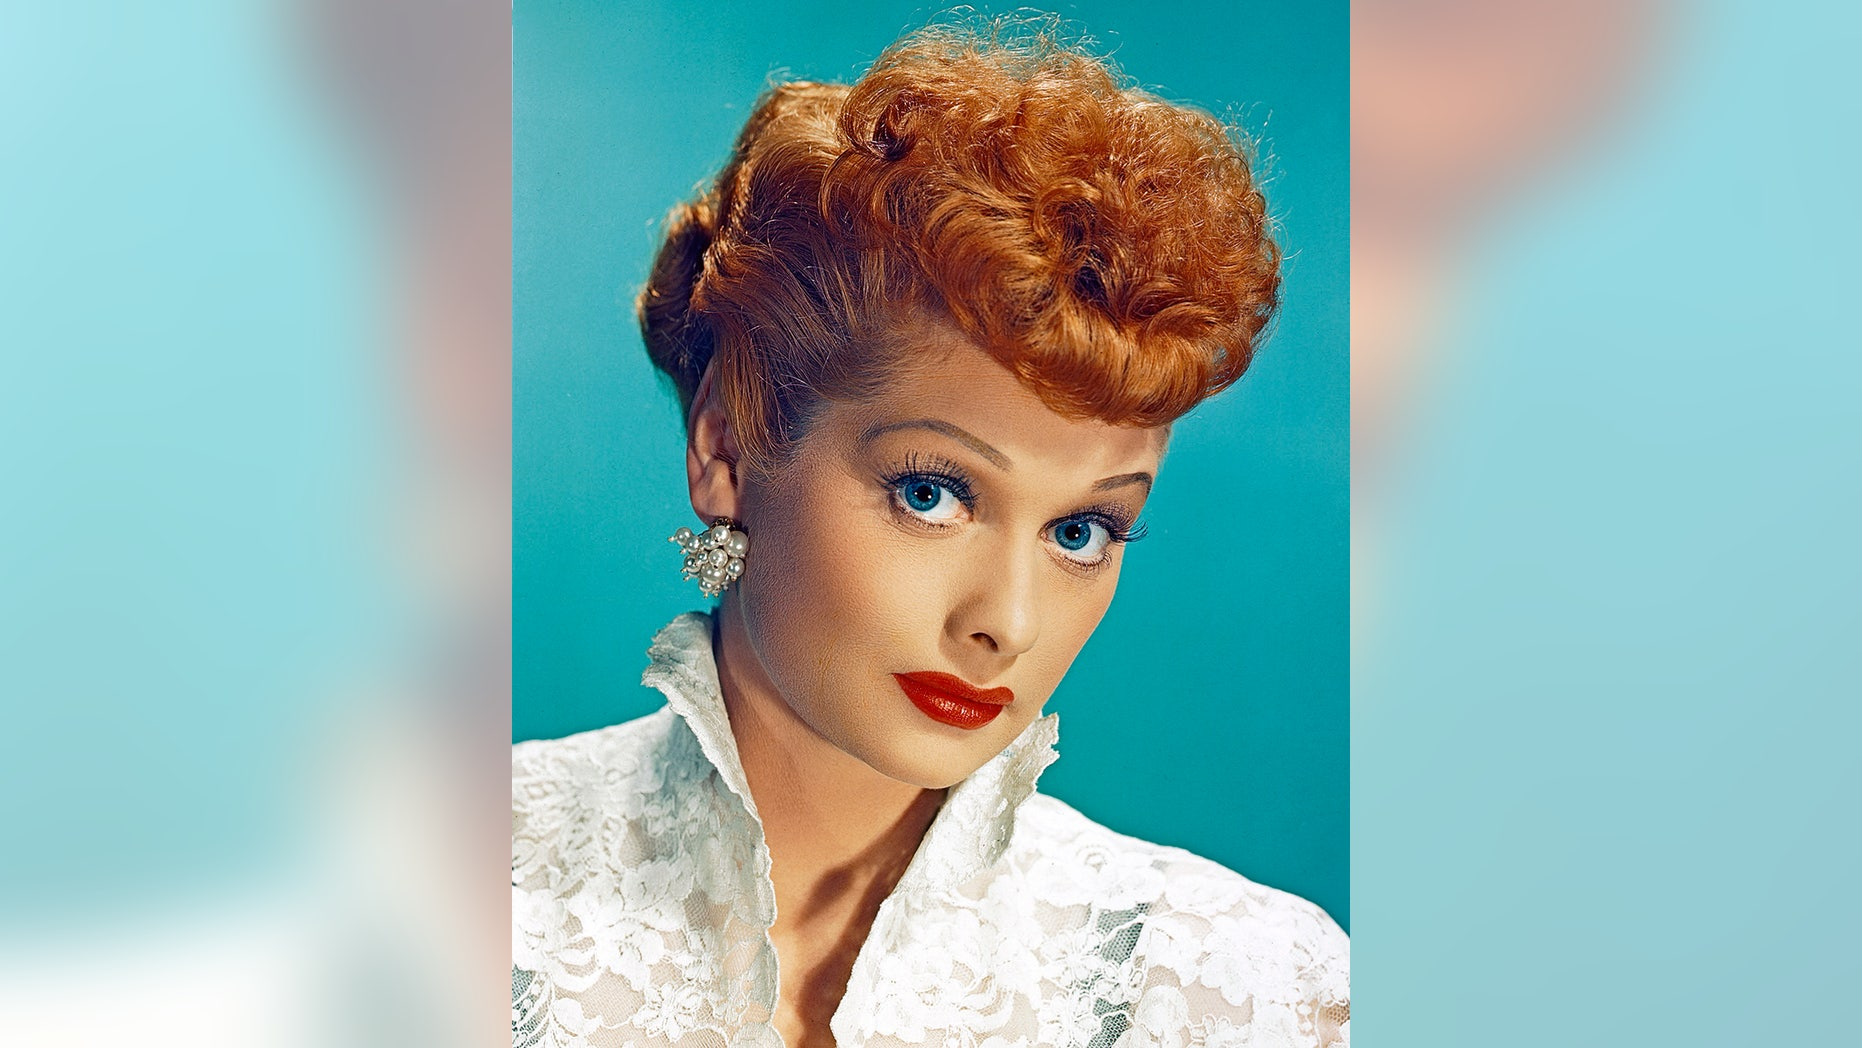 American actress Lucille Ball (1911-1989) as Lucy Esmeralda MacGillicuddy Ricardo in the popular TV series 'I Love Lucy', circa 1955. (Photo by Silver Screen Collection/Hulton Archive/Getty Images)